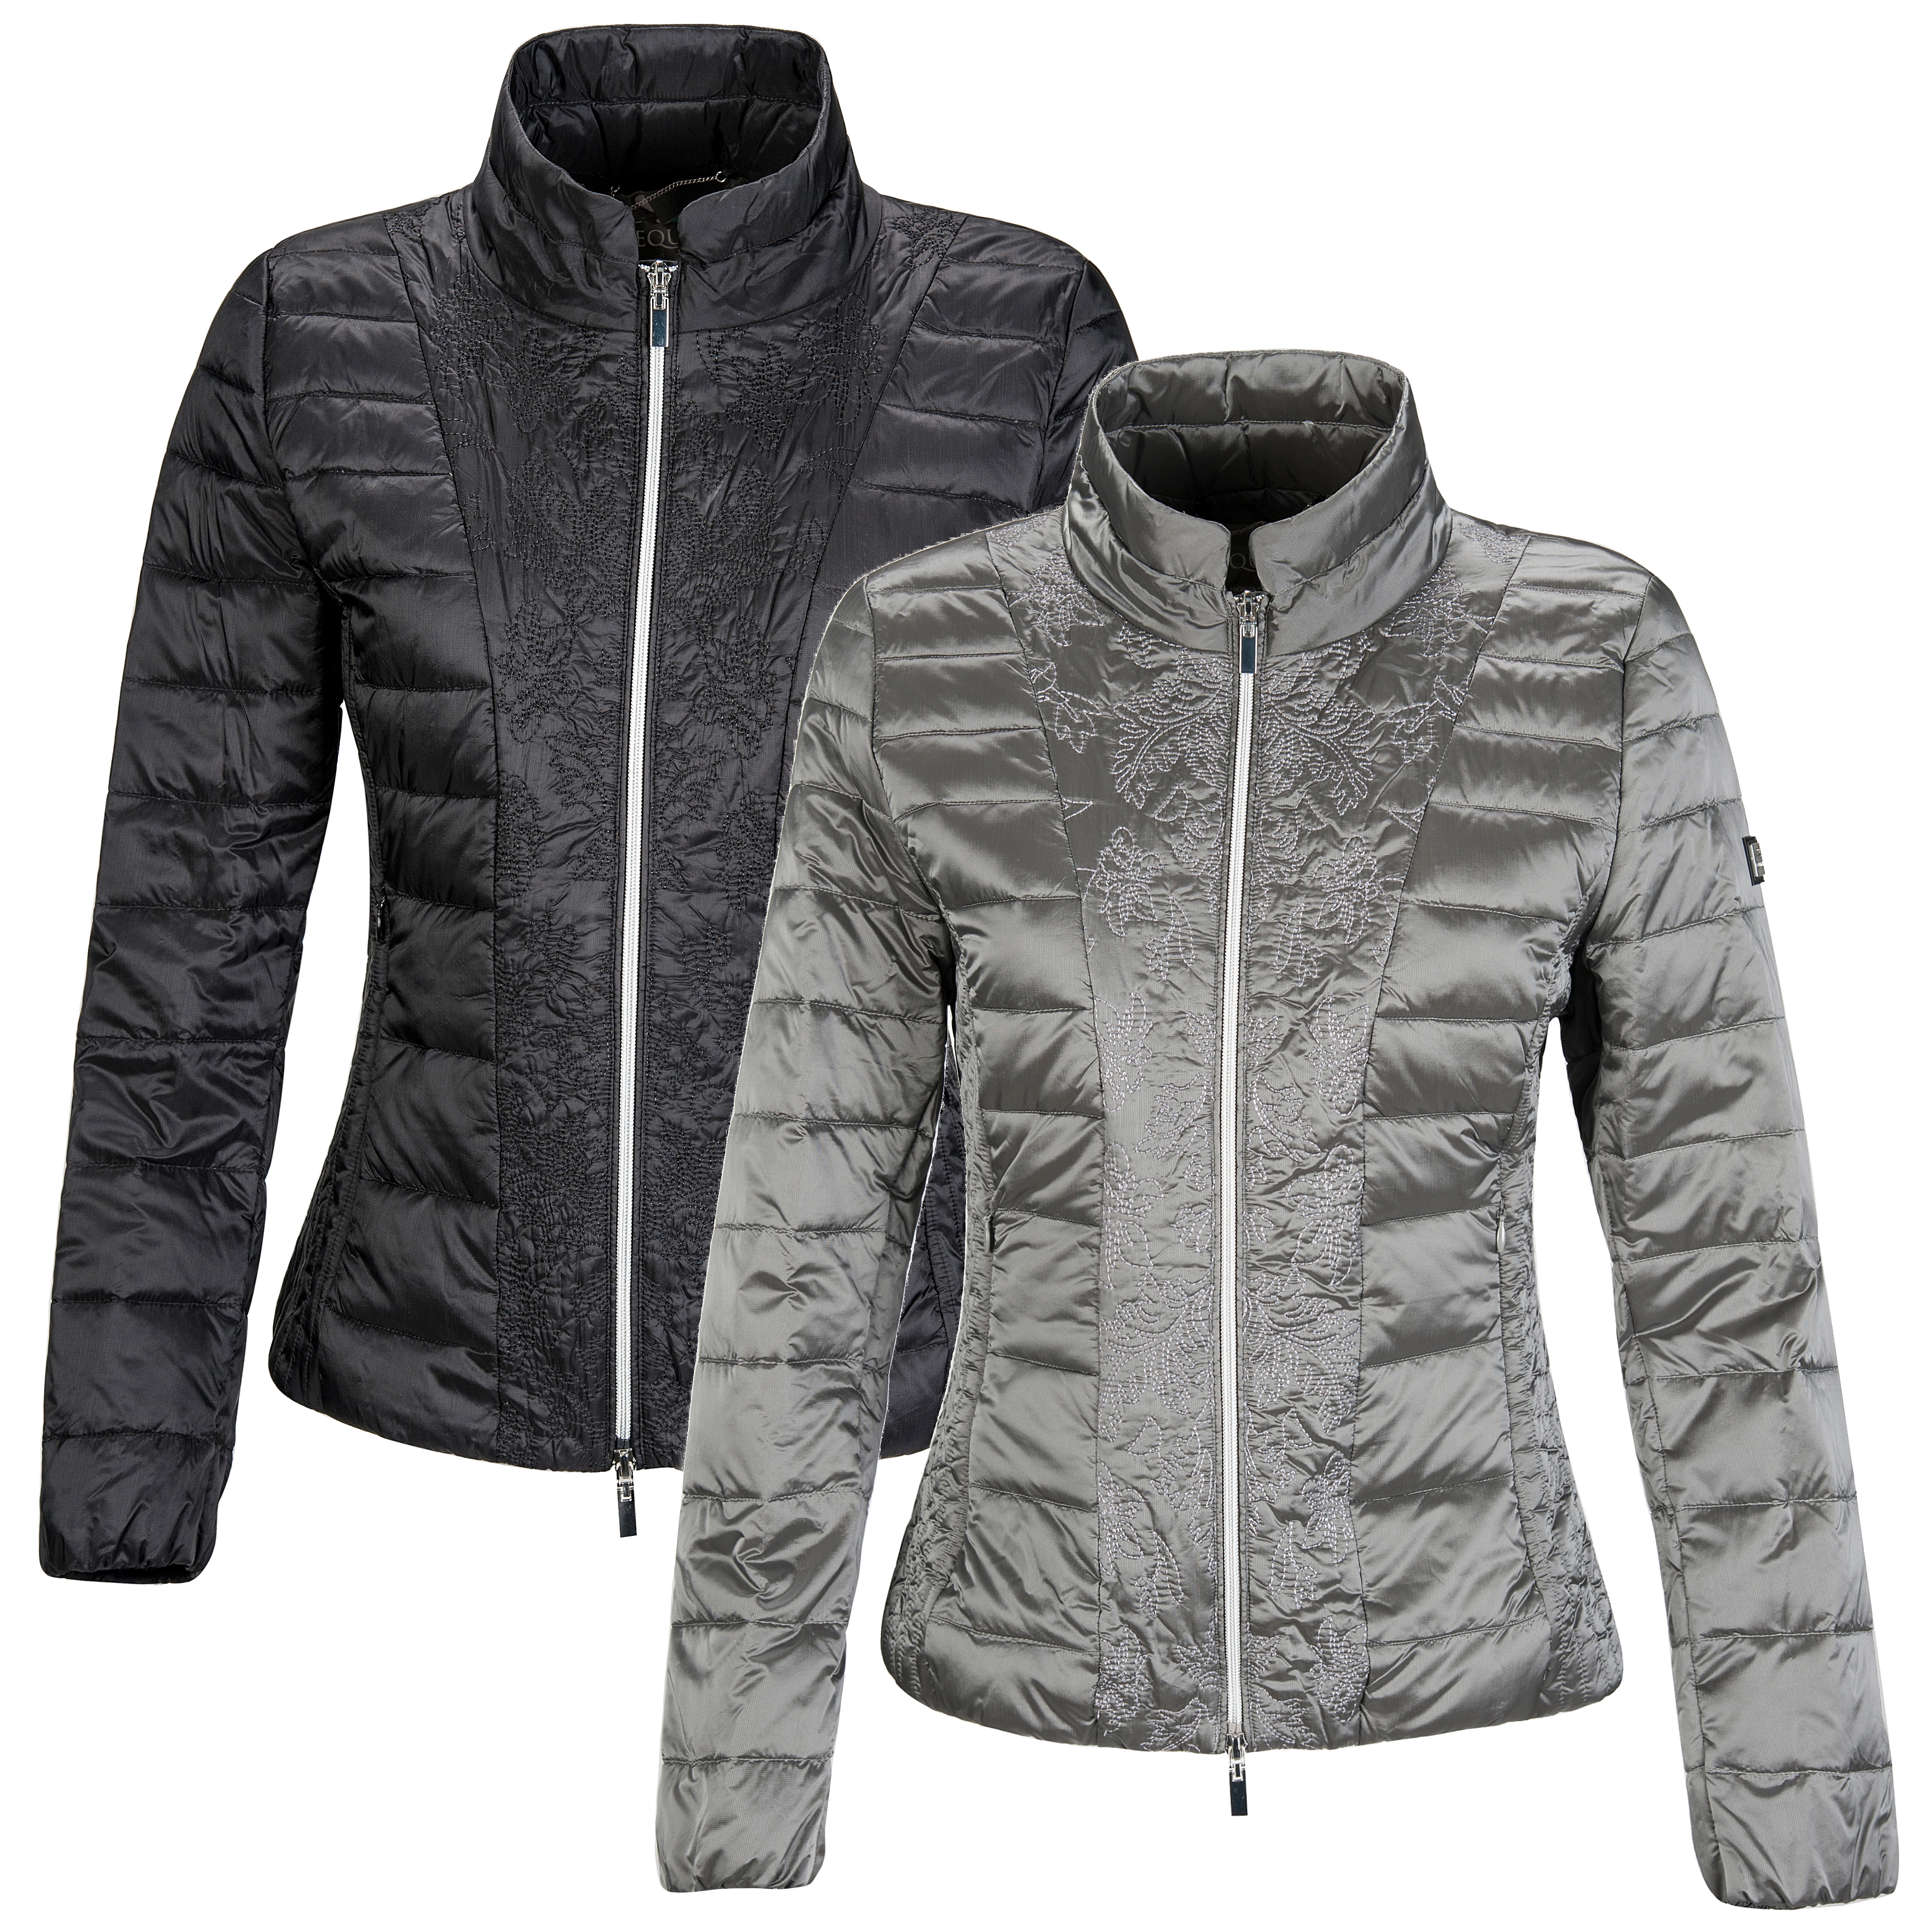 4a33d92b78 Equiline Womens Down Jacket Parsifal - Royal Equestrian